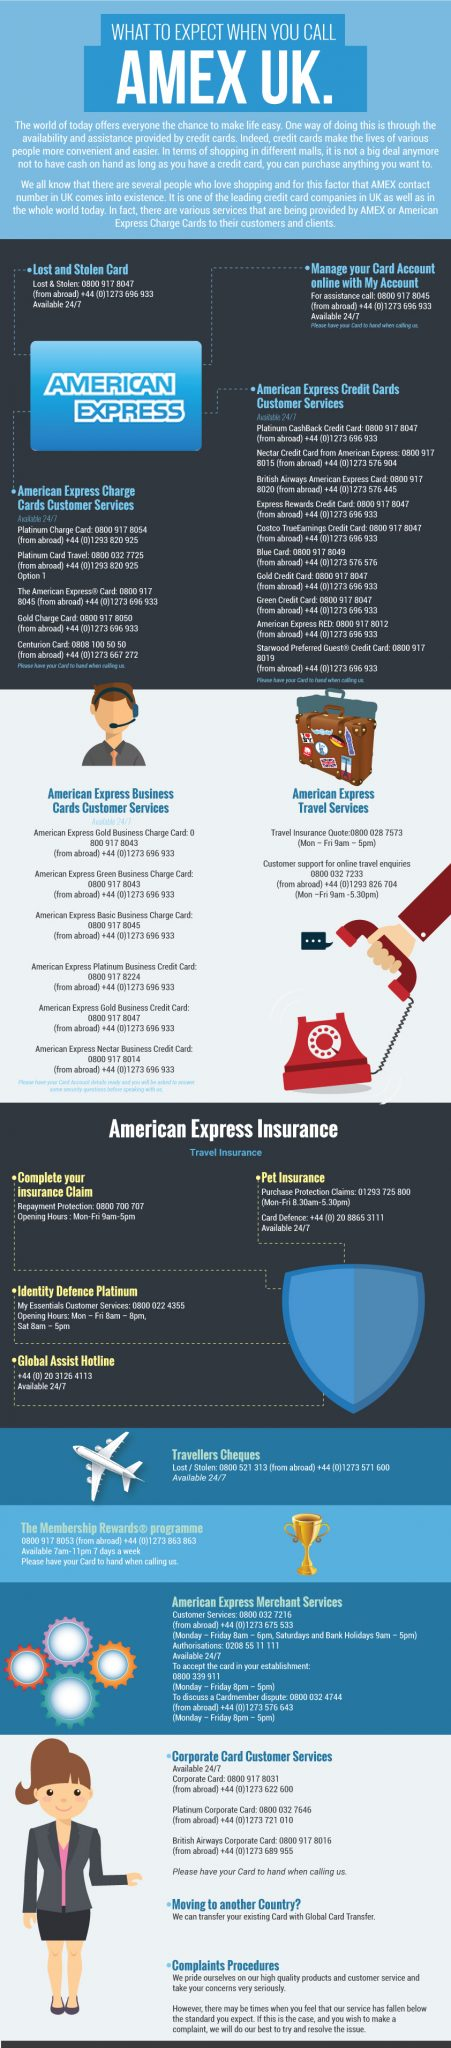 American Express 800 Number >> Call American Express 08443069129 Customer Care Number